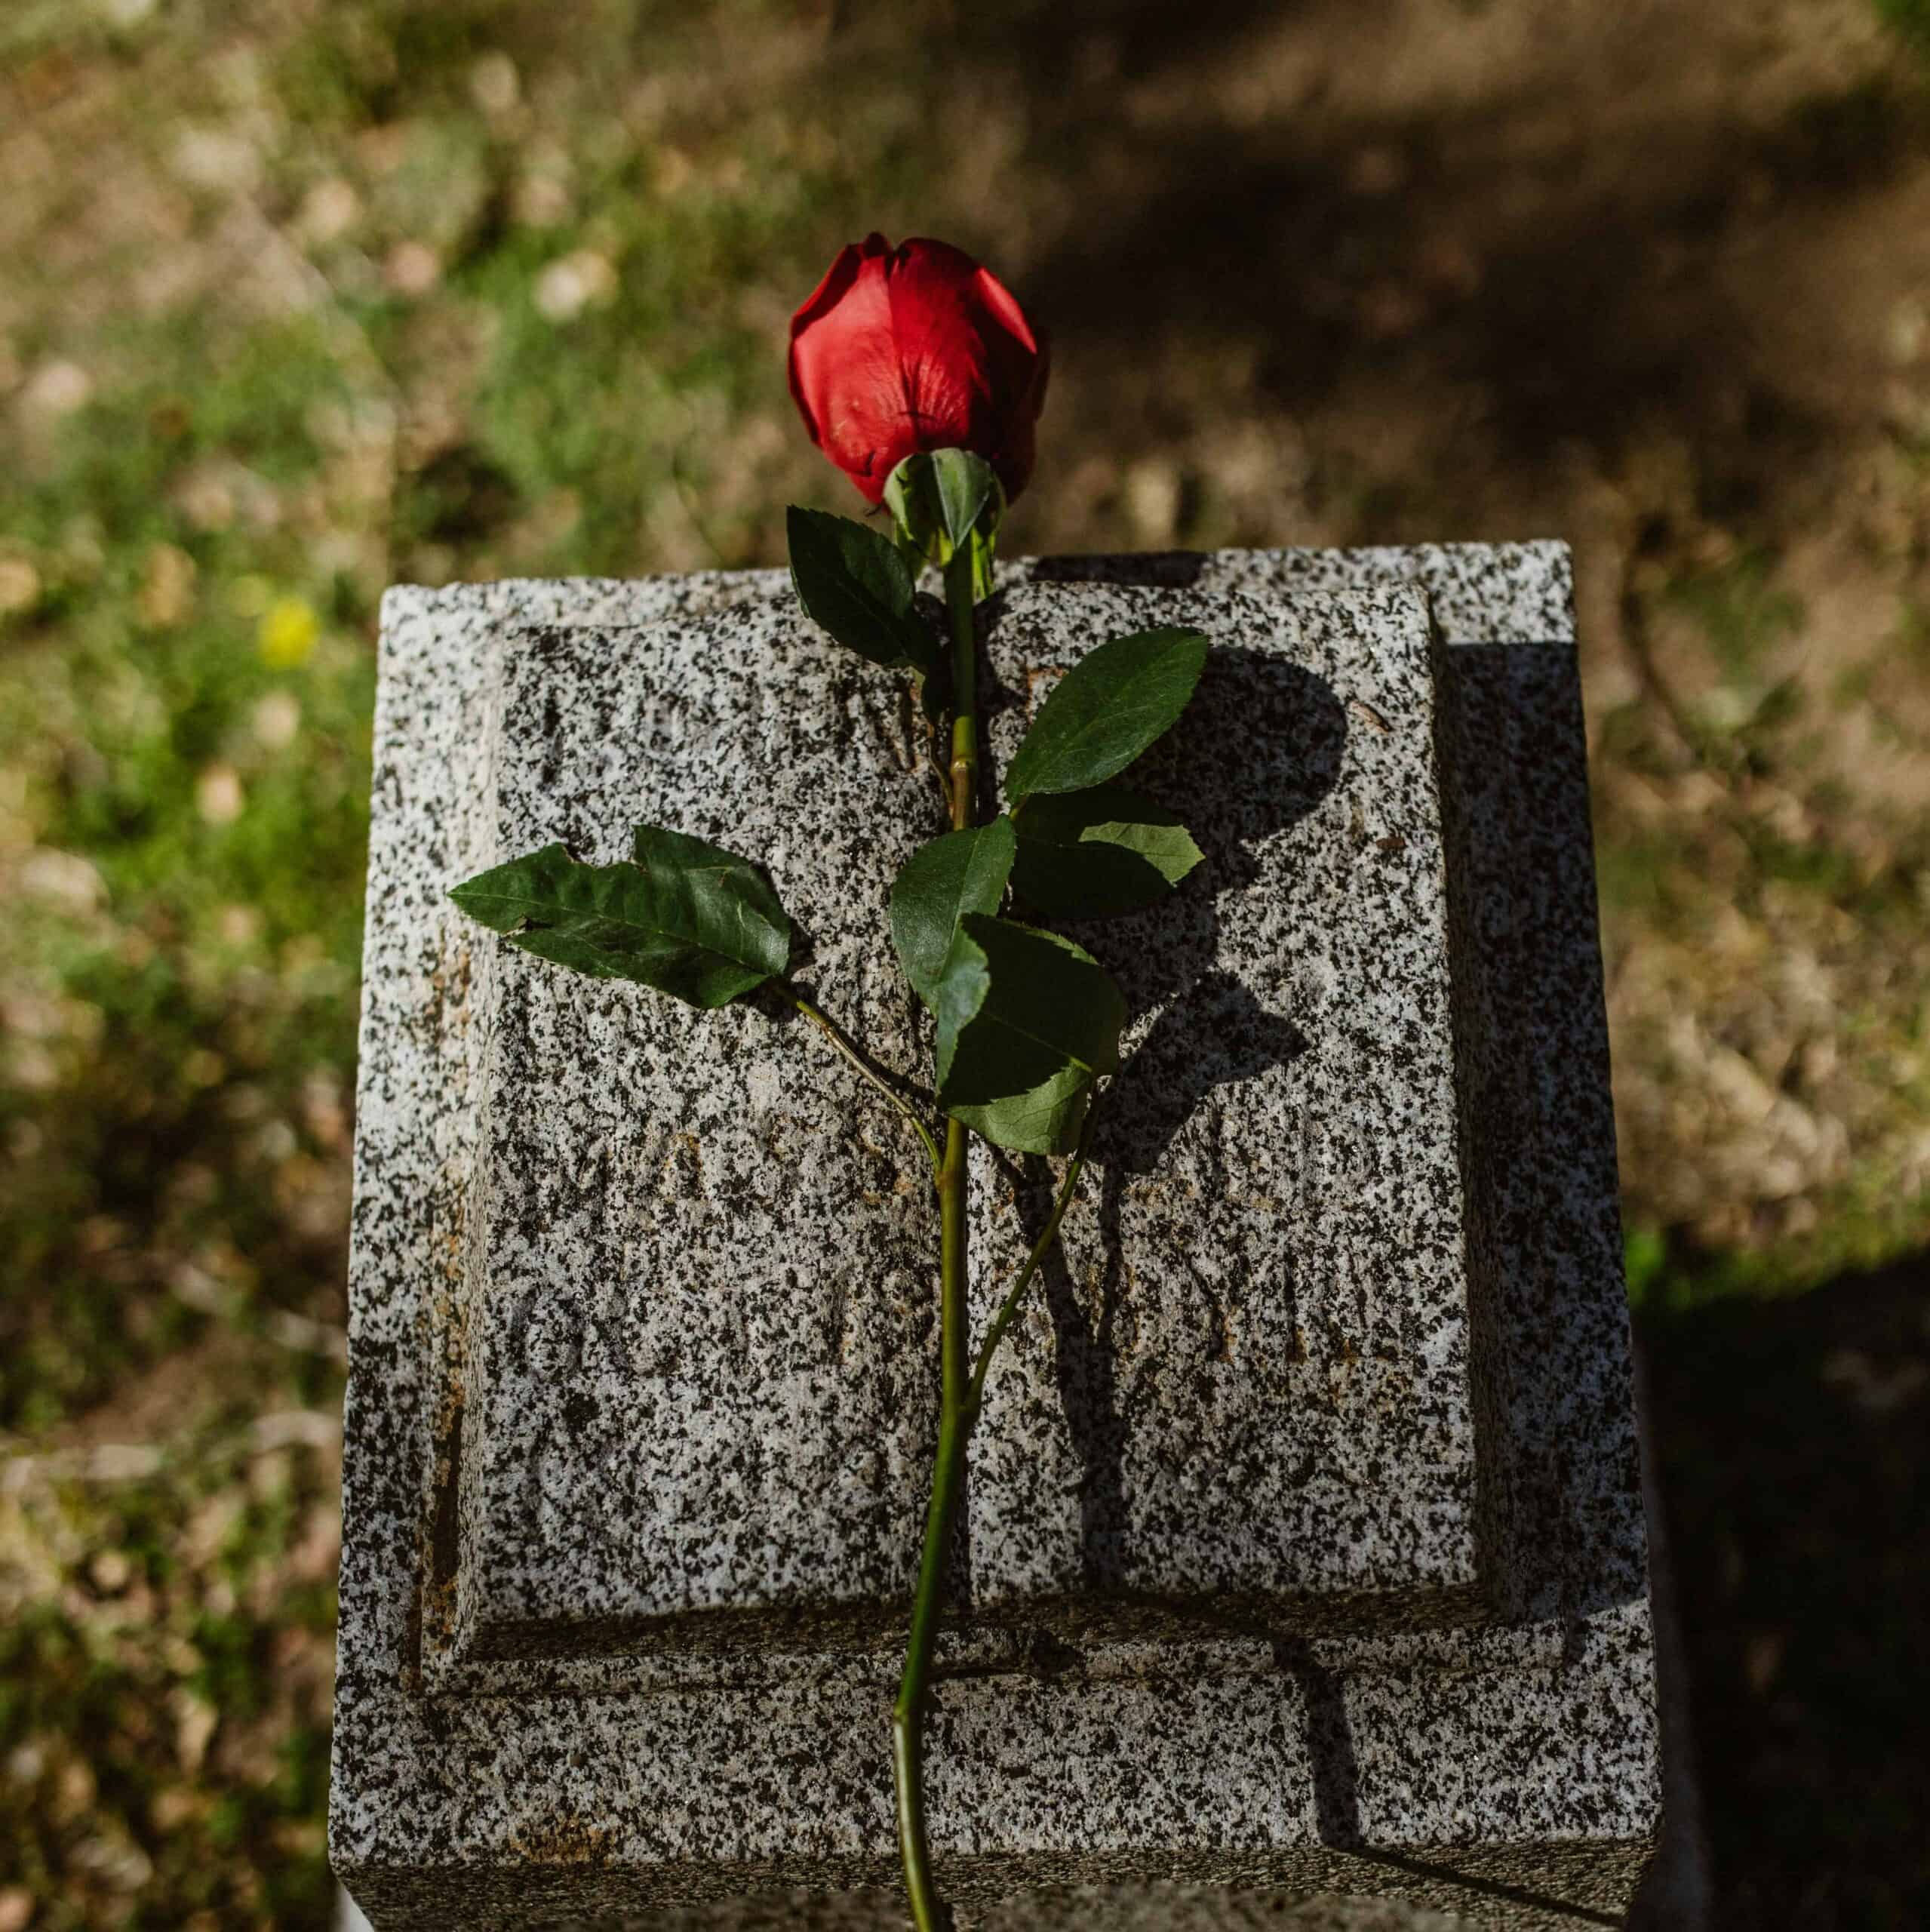 A rose laying on a headstone.